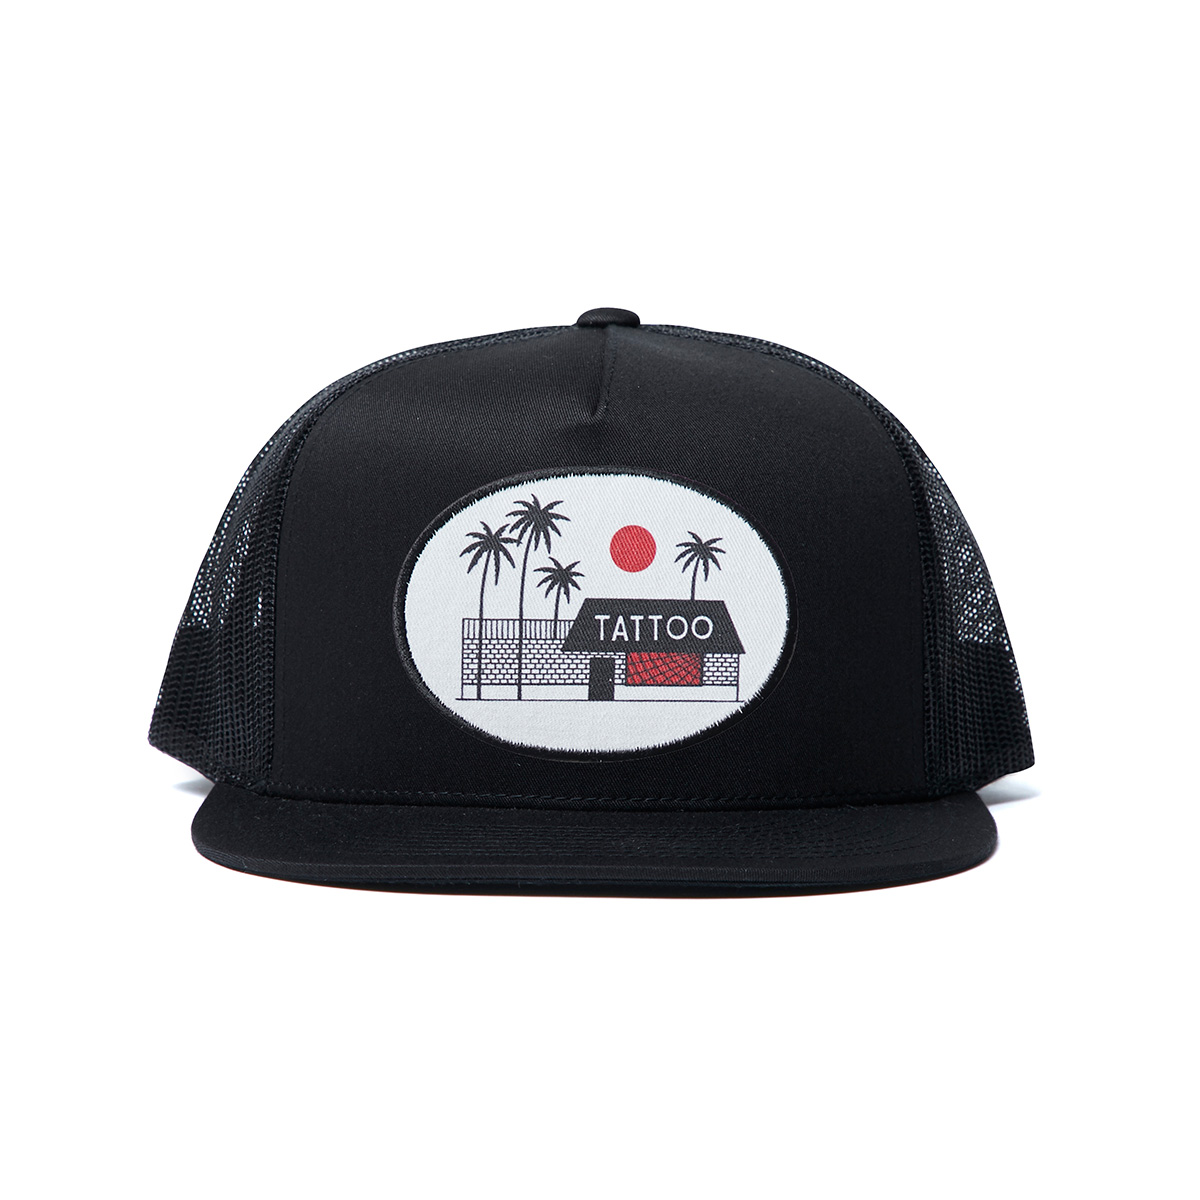 THE SHOP CAP